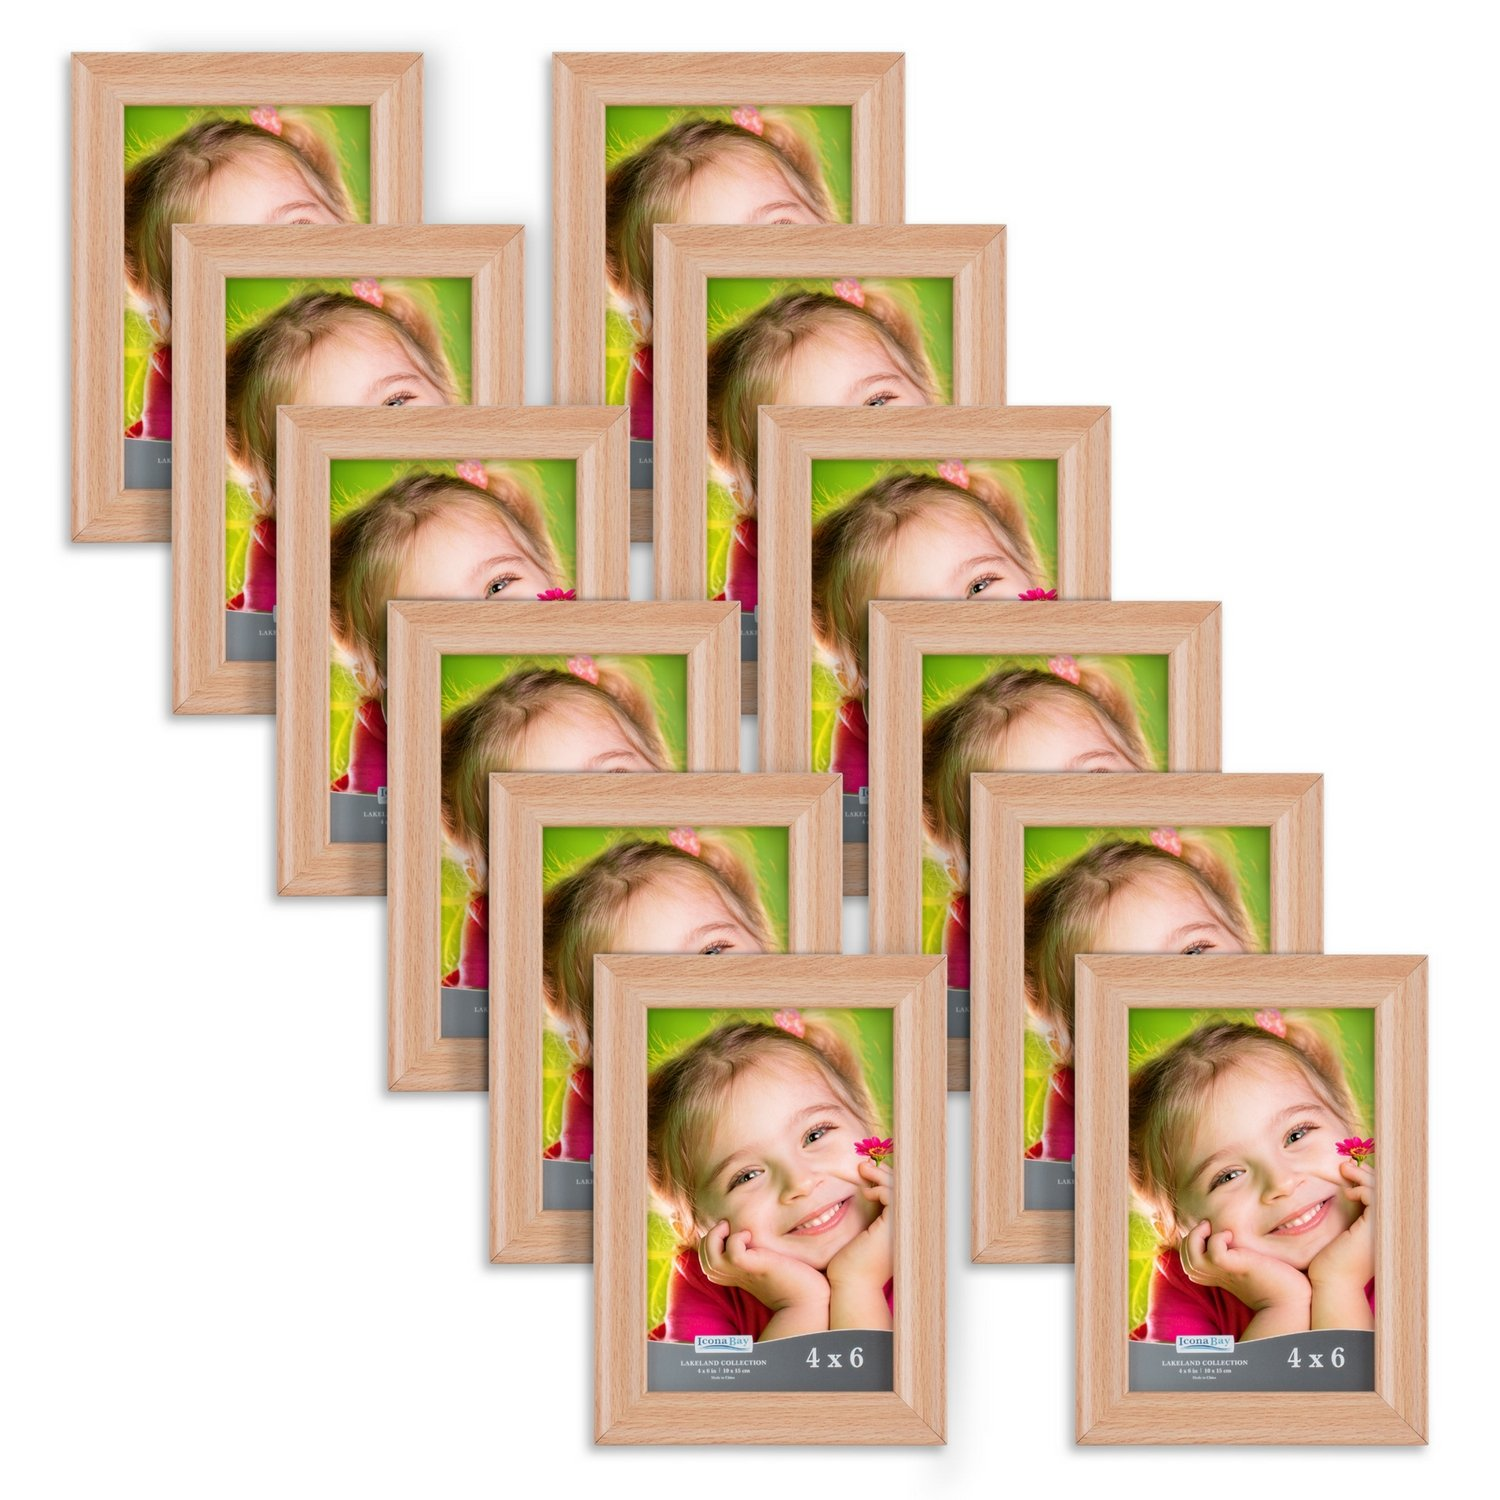 Icona Bay 4x6 Picture Frame (12 Pack, Beechwood Finish), Photo Frame 4 x 6, Composite Wood Frame for Walls or Tables, Set of 12 Lakeland Collection by Icona Bay